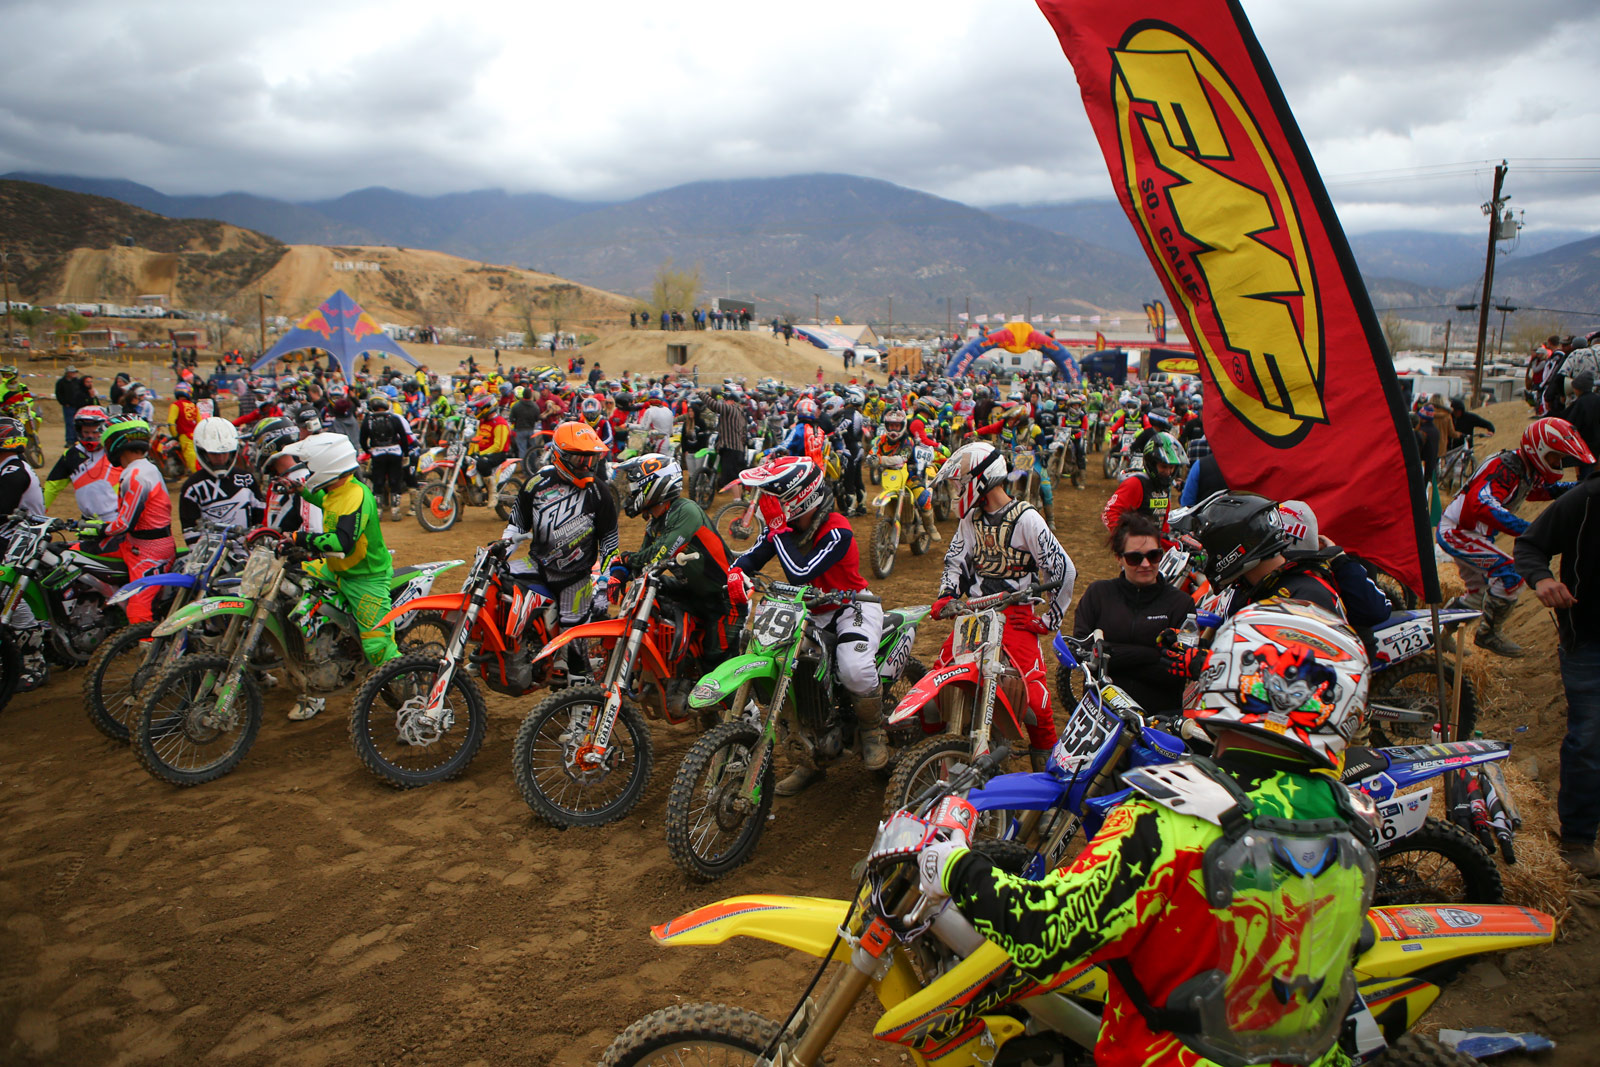 Sunday - Red Bull Day In The Dirt 17 Wrap-up